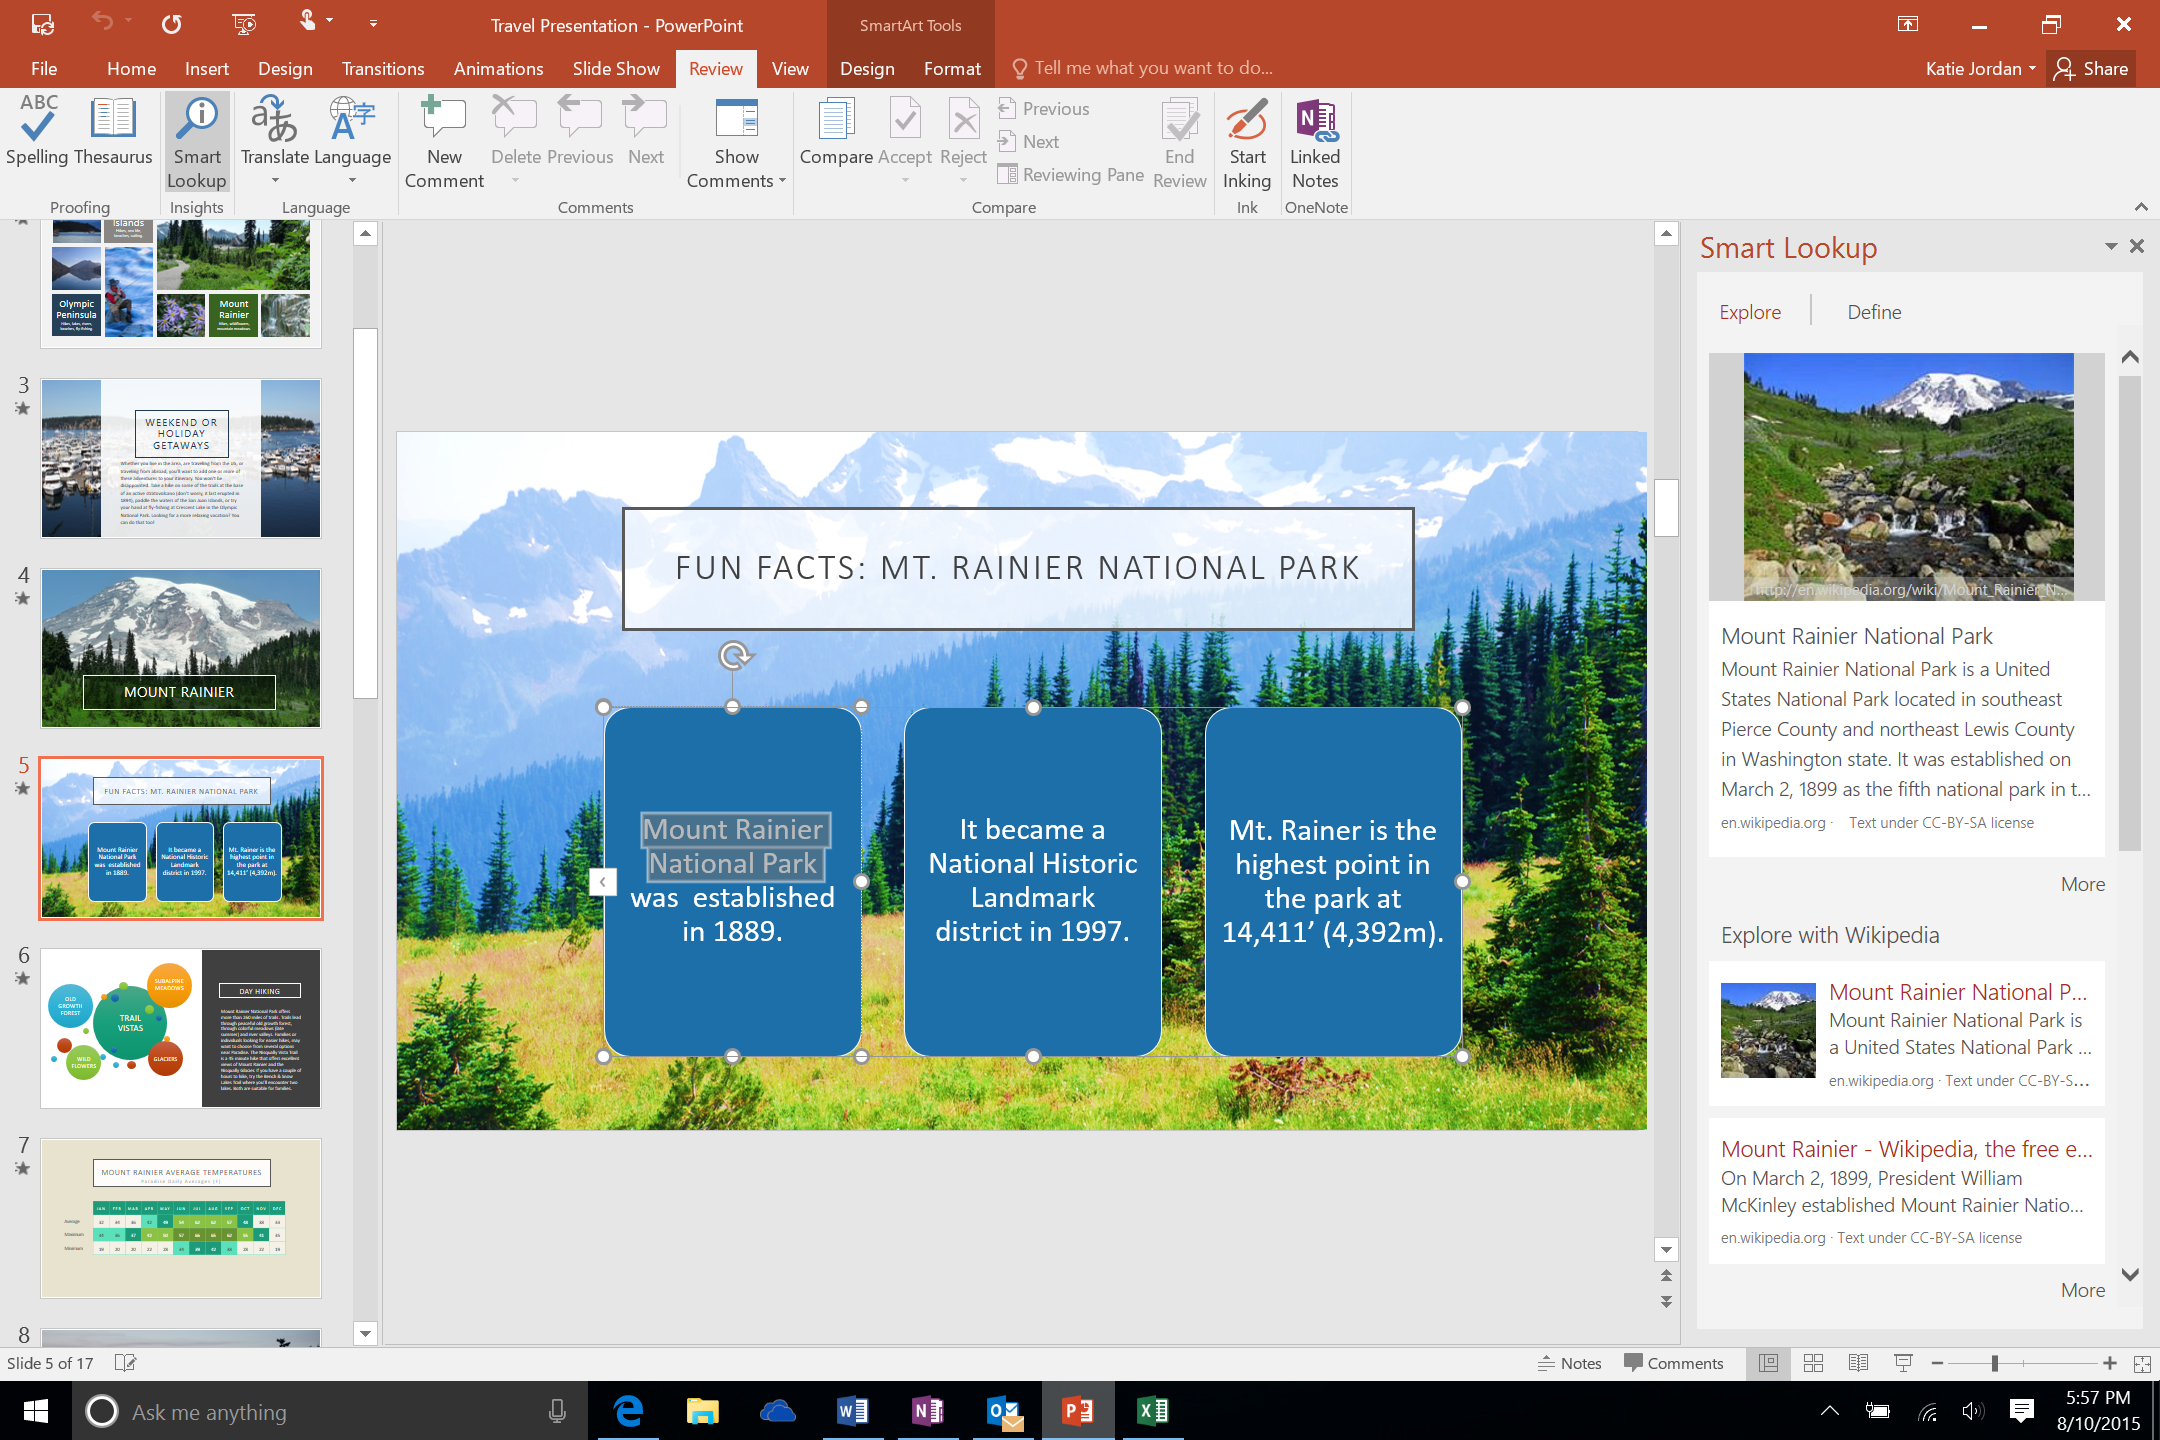 Smart Lookup in PowerPoint 2016